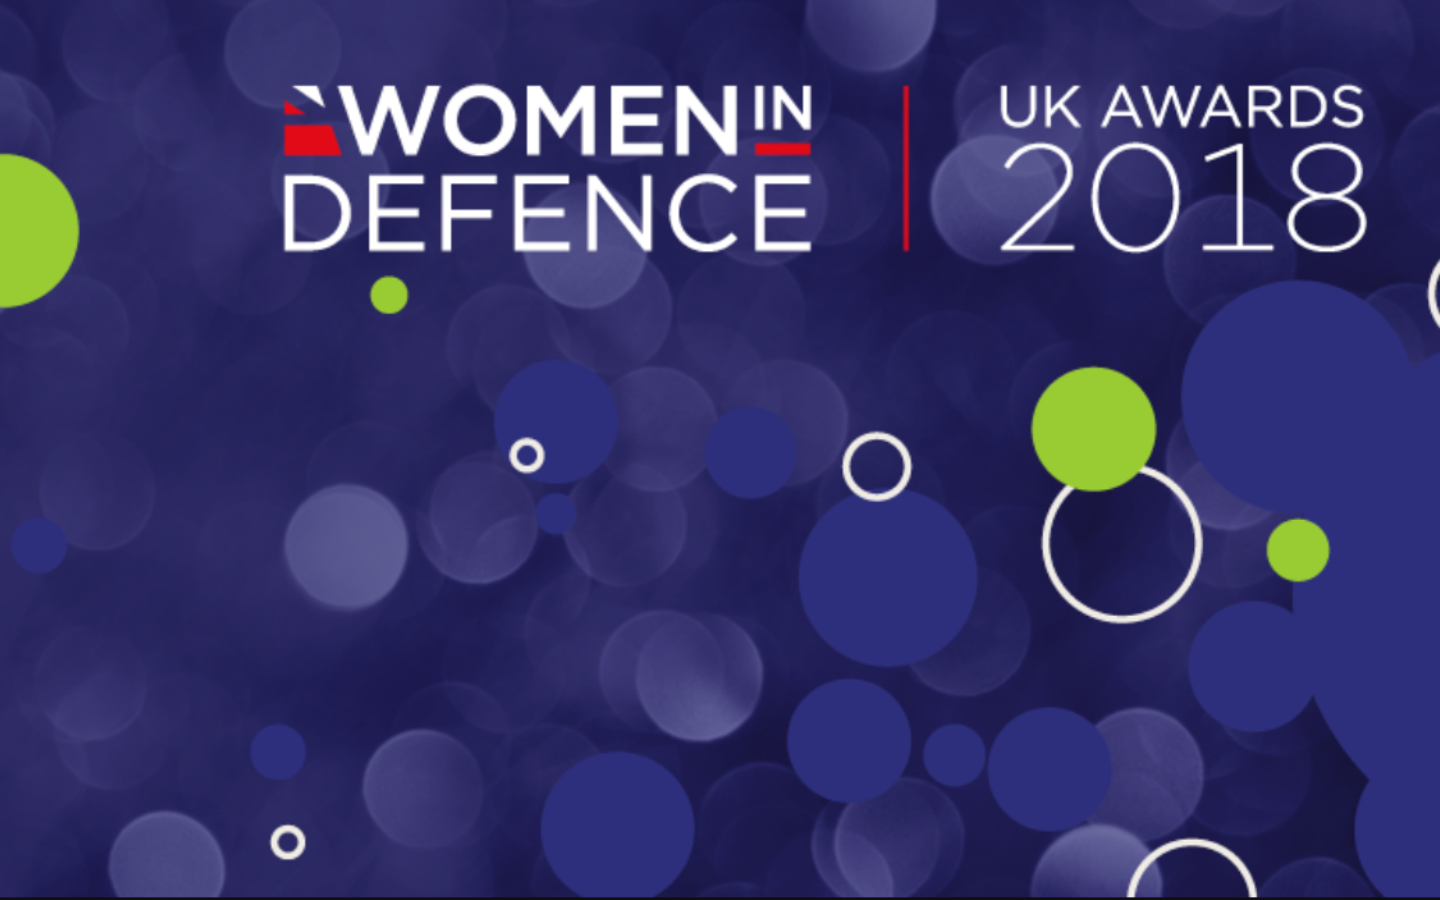 My experience at the Women in Defence Awards 2018